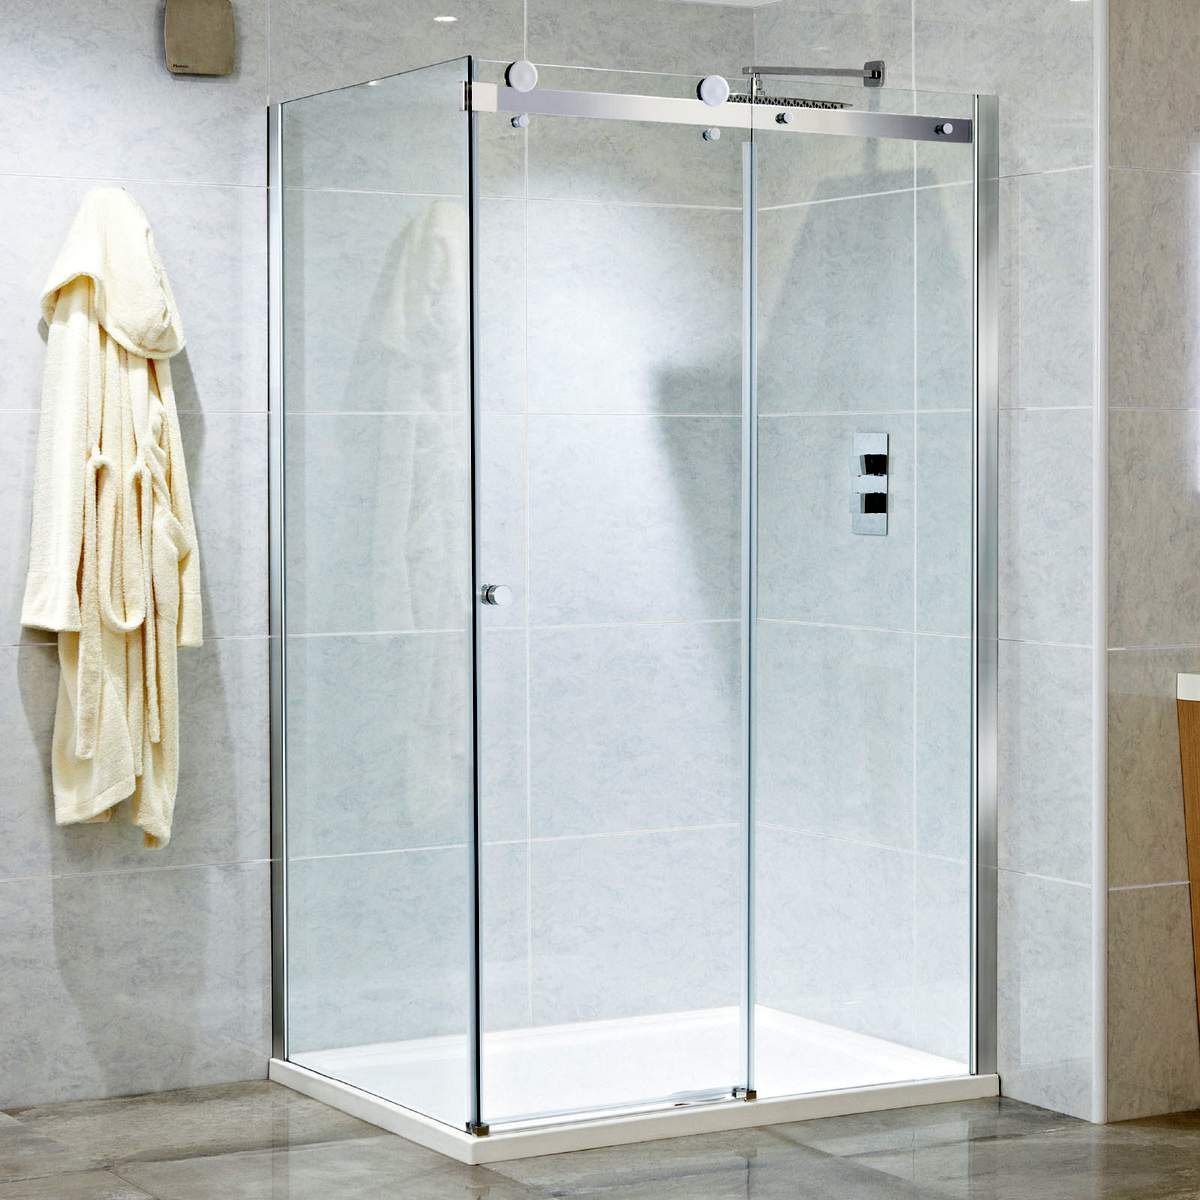 Phoenix Motion 8mm Frameless Single Sliding Shower Door With Images Sliding Shower Door Shower Doors Framed Shower Door